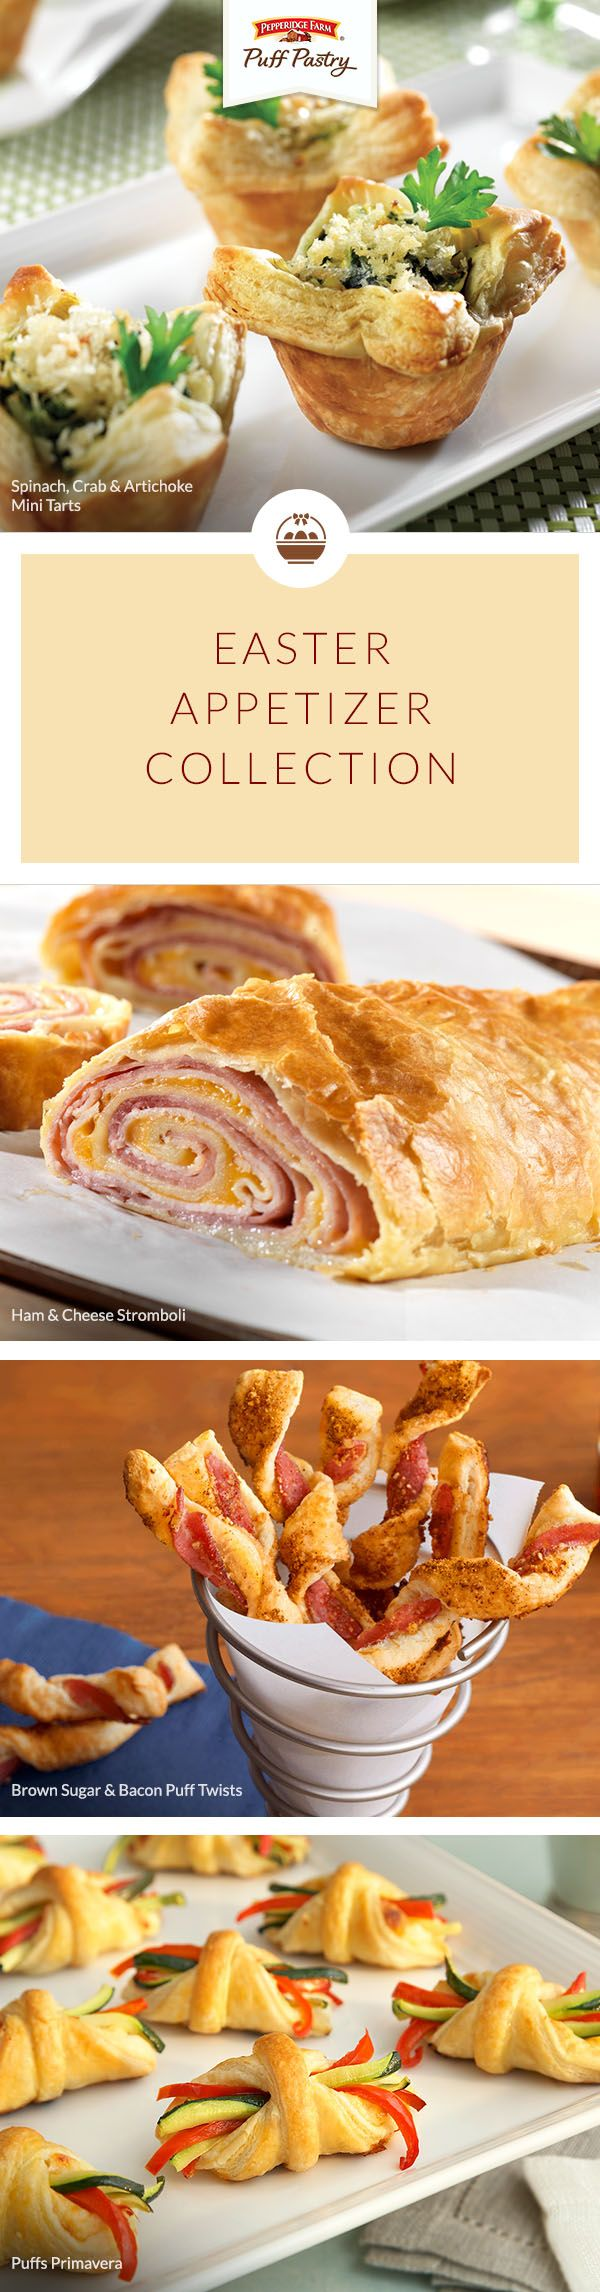 Pepperidge Farm Puff Pastry Easter Appetizer Recipe Collection. Whether you're hosting Easter dinner or celebrating at a potluck, this list is full of fabulous Easter appetizers to serve. Everyone will spring to the table for these Puff Pastry treats like Brown Sugar and Bacon Twists, Puffs Primavera and Ham and Cheese Stromboli.